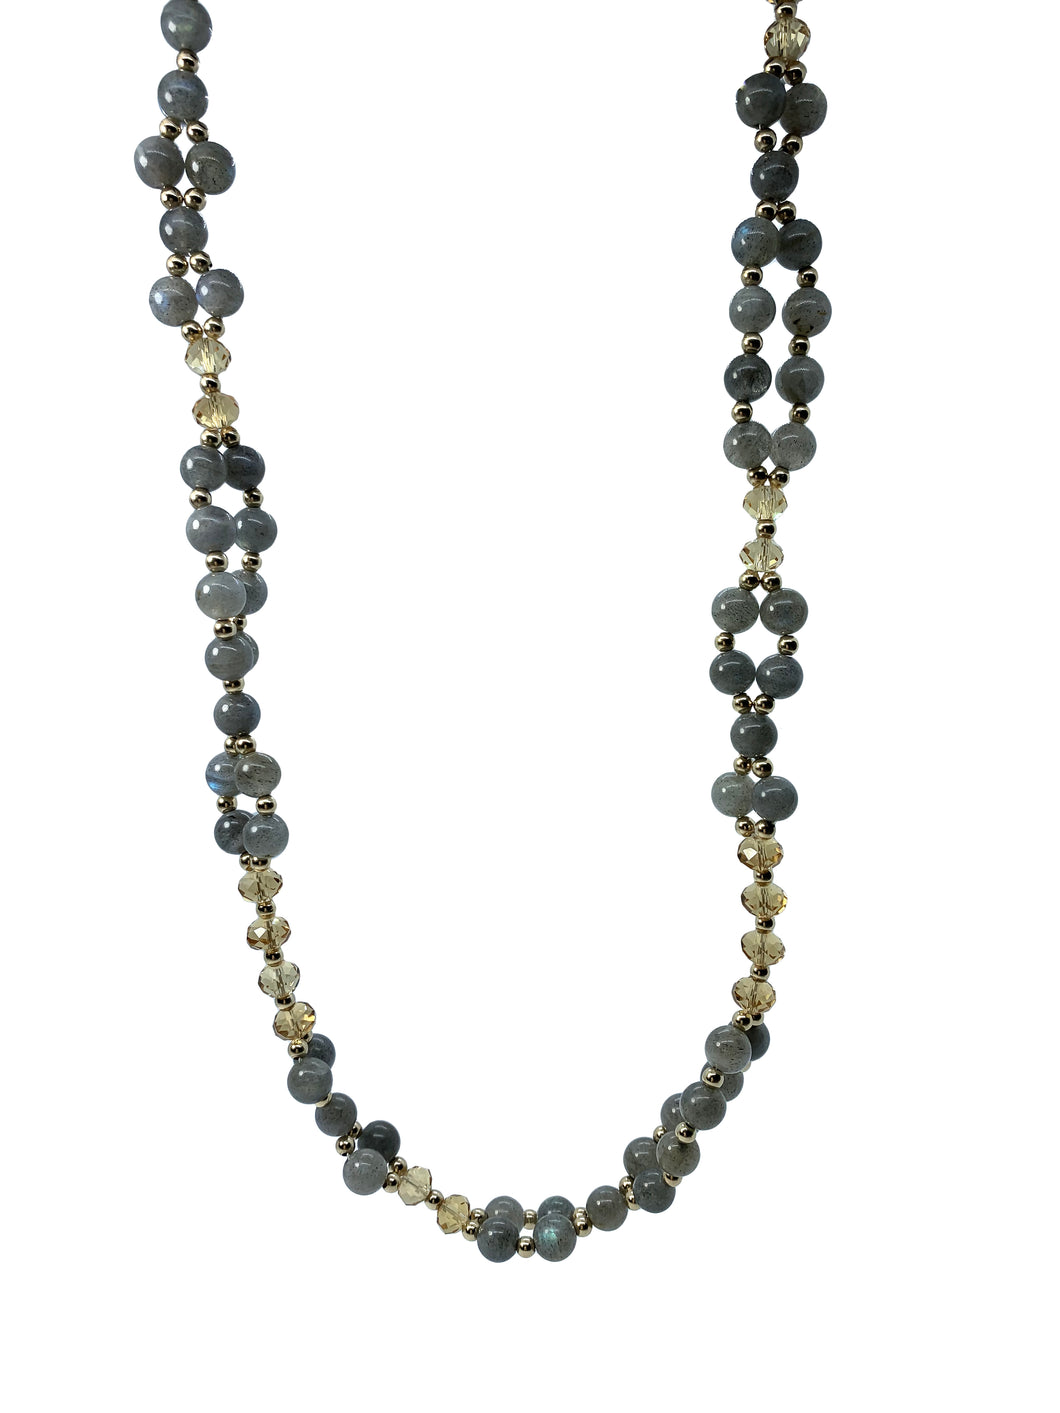 TANTRIC MALA NECKLACE | BY JOTI MUKANDE